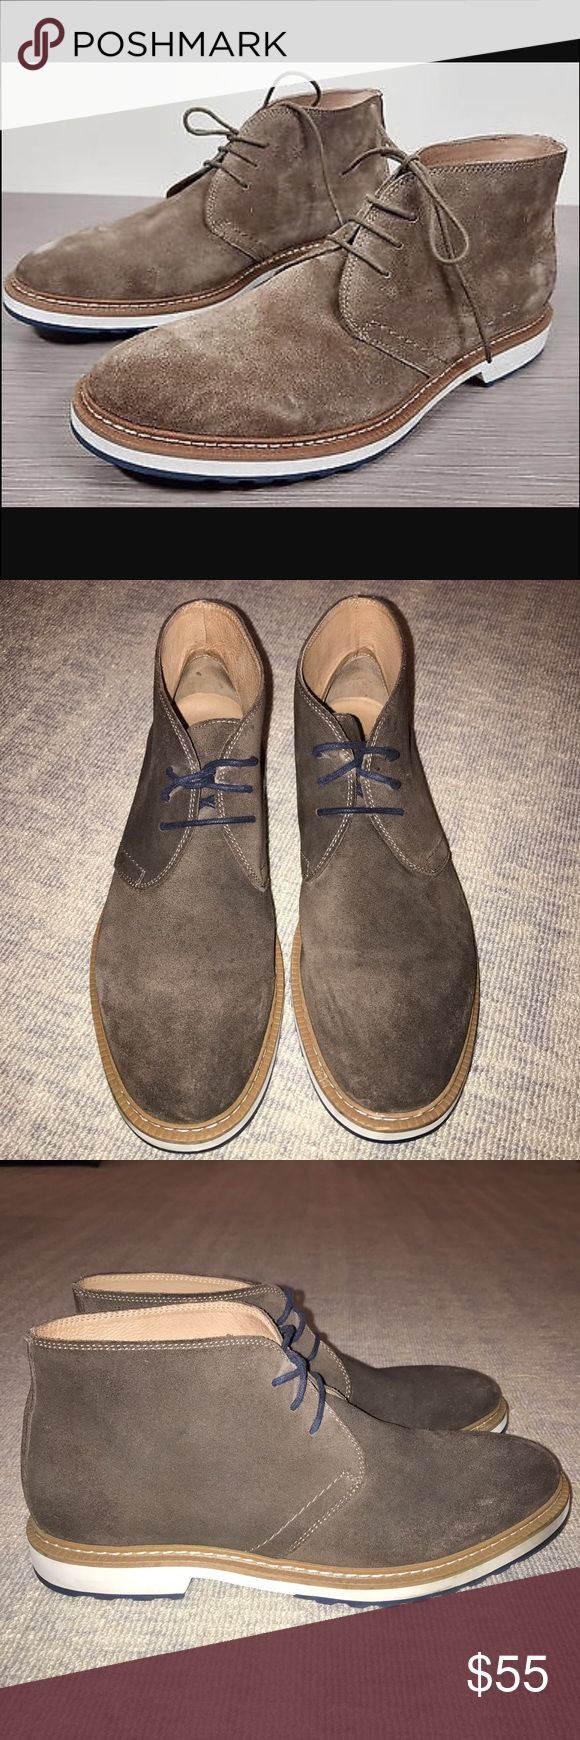 1901 Men's suede chukka boots. 1901 Men's brown suede chukka boots. Suede upper. Rubber soles. Some scuffing on rubber soles (pictured) but not bad at all. Great condition. 1901 Shoes Chukka Boots